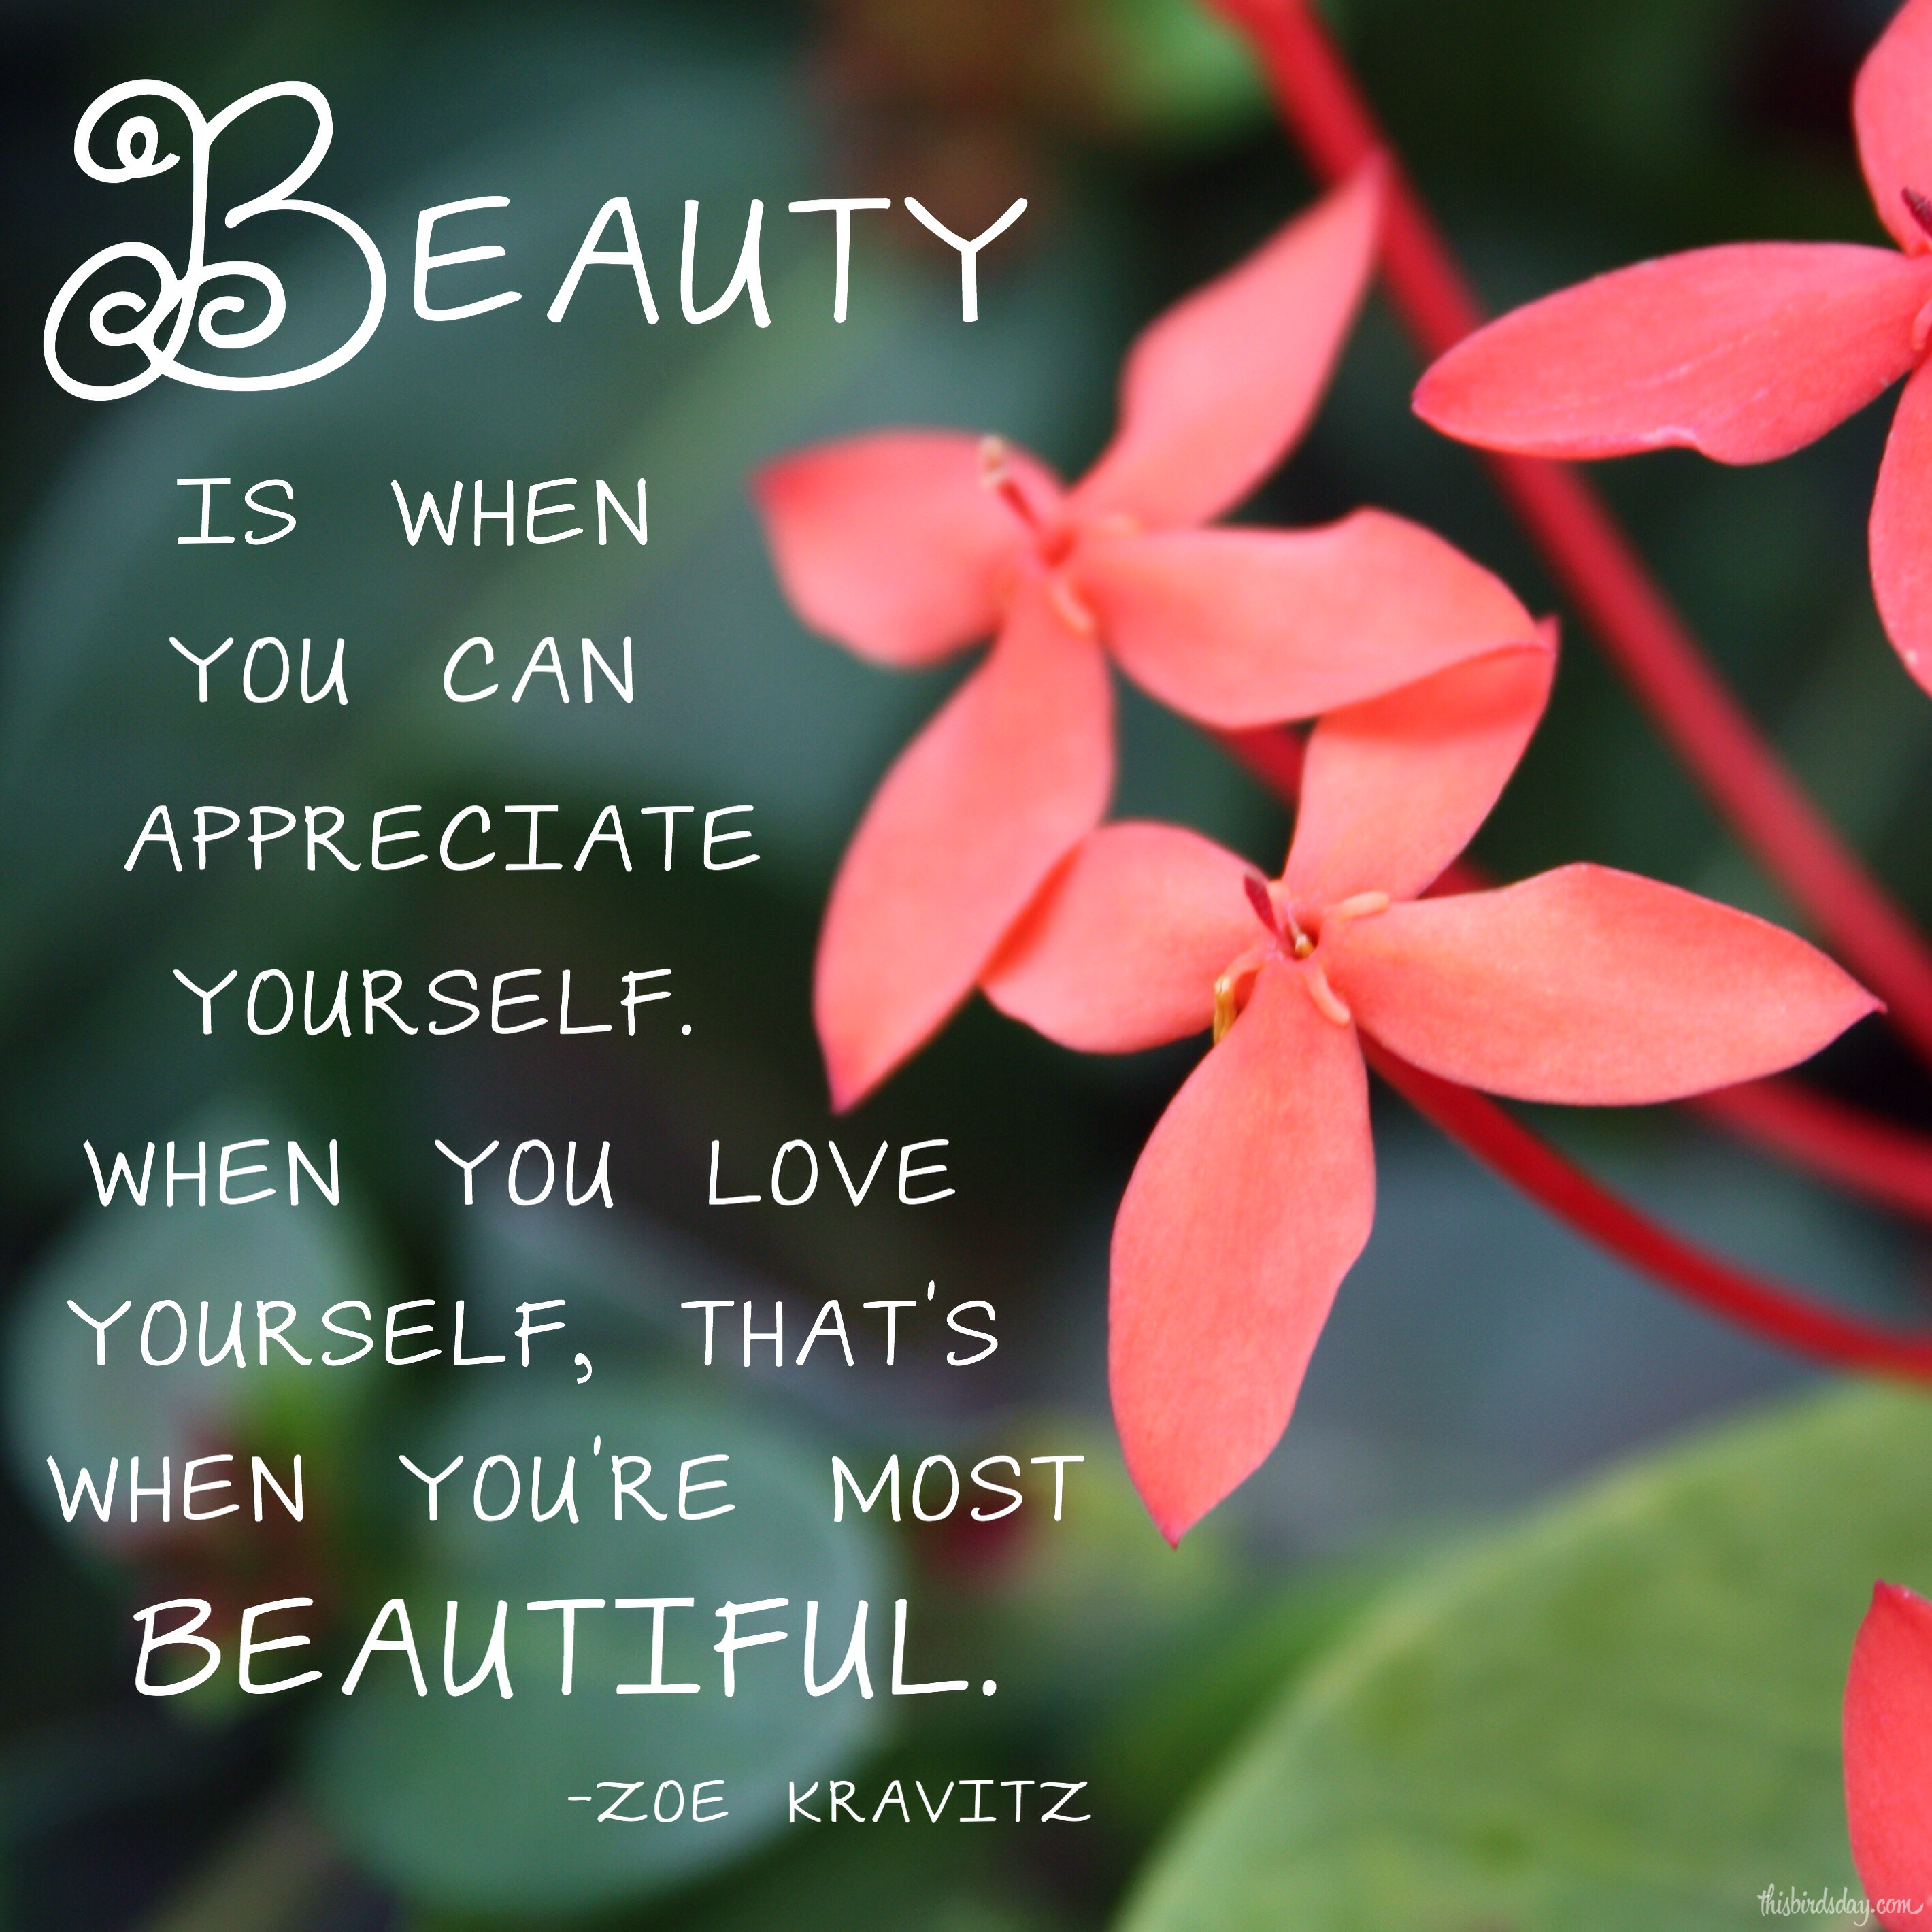 """Beauty is when you can appreciate yourself. When you love yourself, that's when you're most beautiful."" Zoe Kravitz"